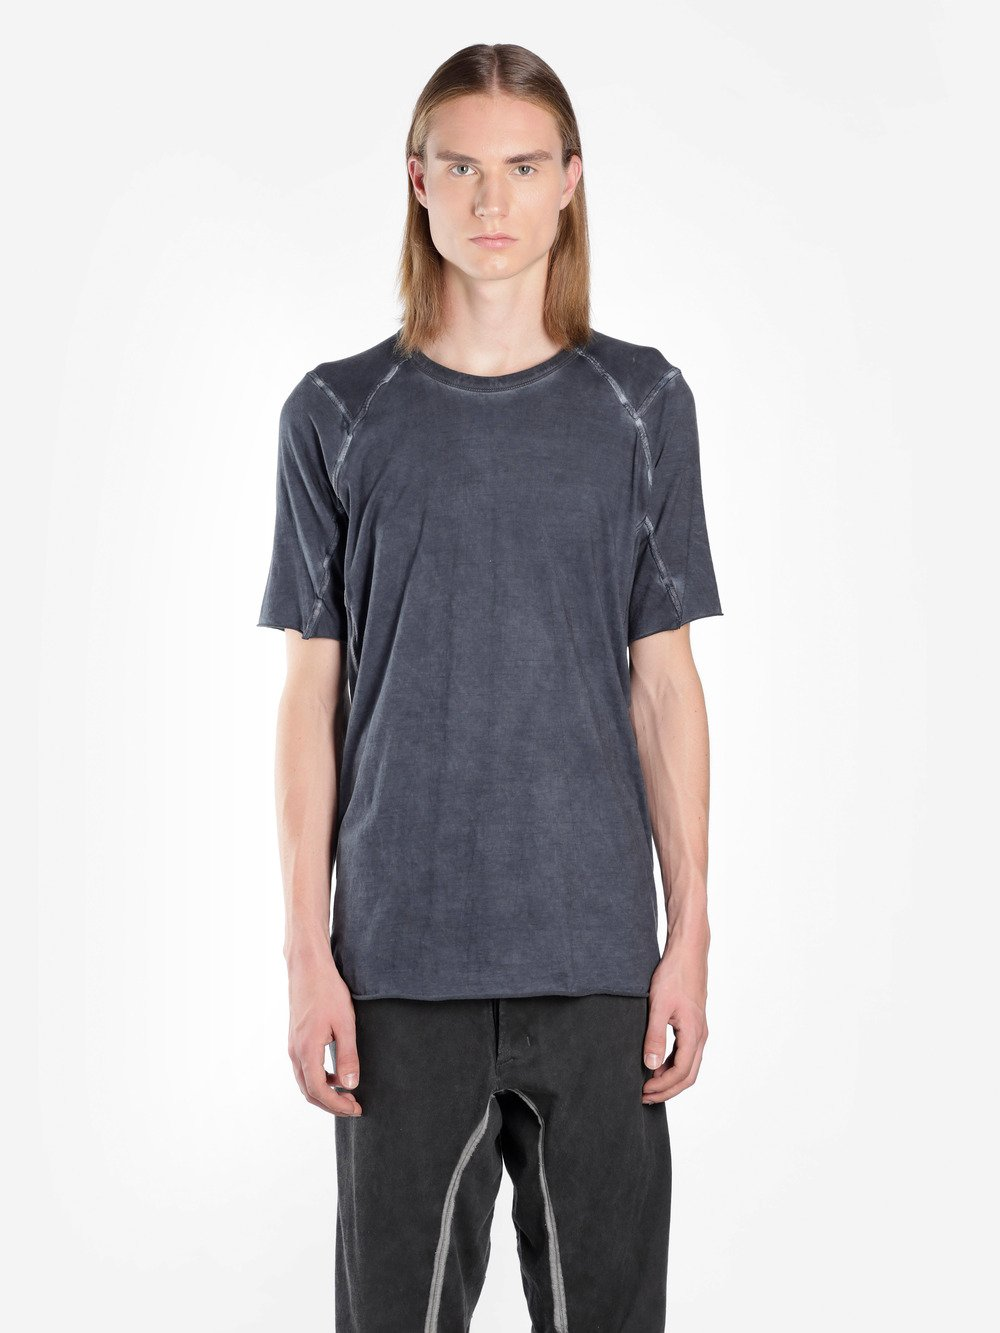 ISAAC SELLAM MEN'S GREY TEE